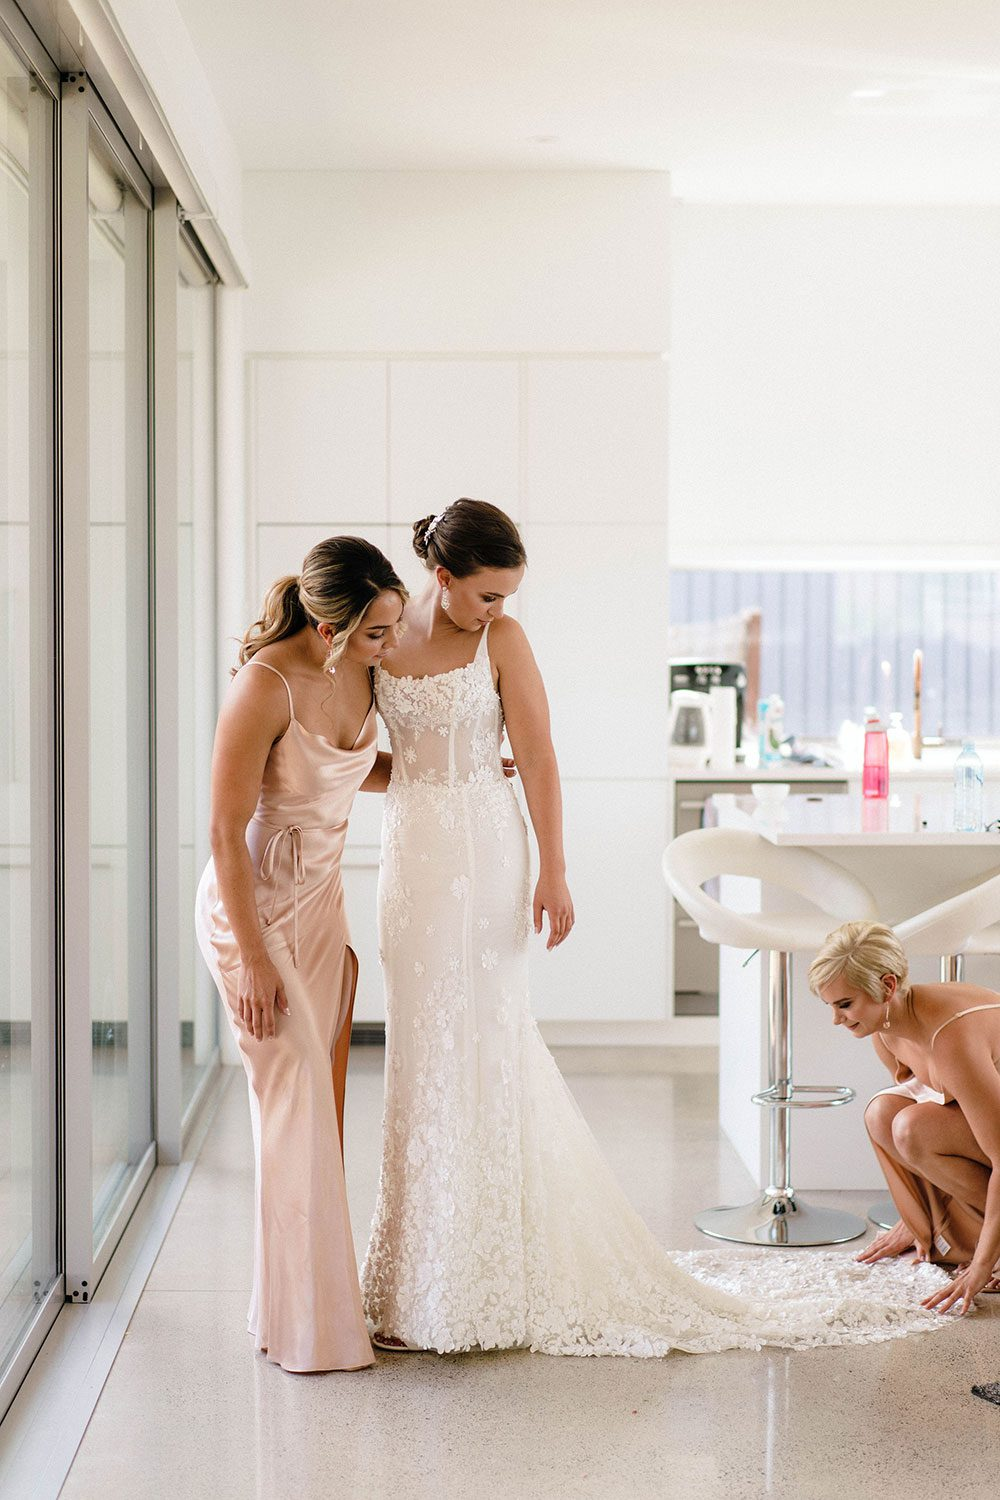 Bride wears bespoke E'More lace gown with boned bodice with hand beaded flower applique and full lace train by Auckland wedding dress maker Vinka Designs - getting ready with bridesmaids